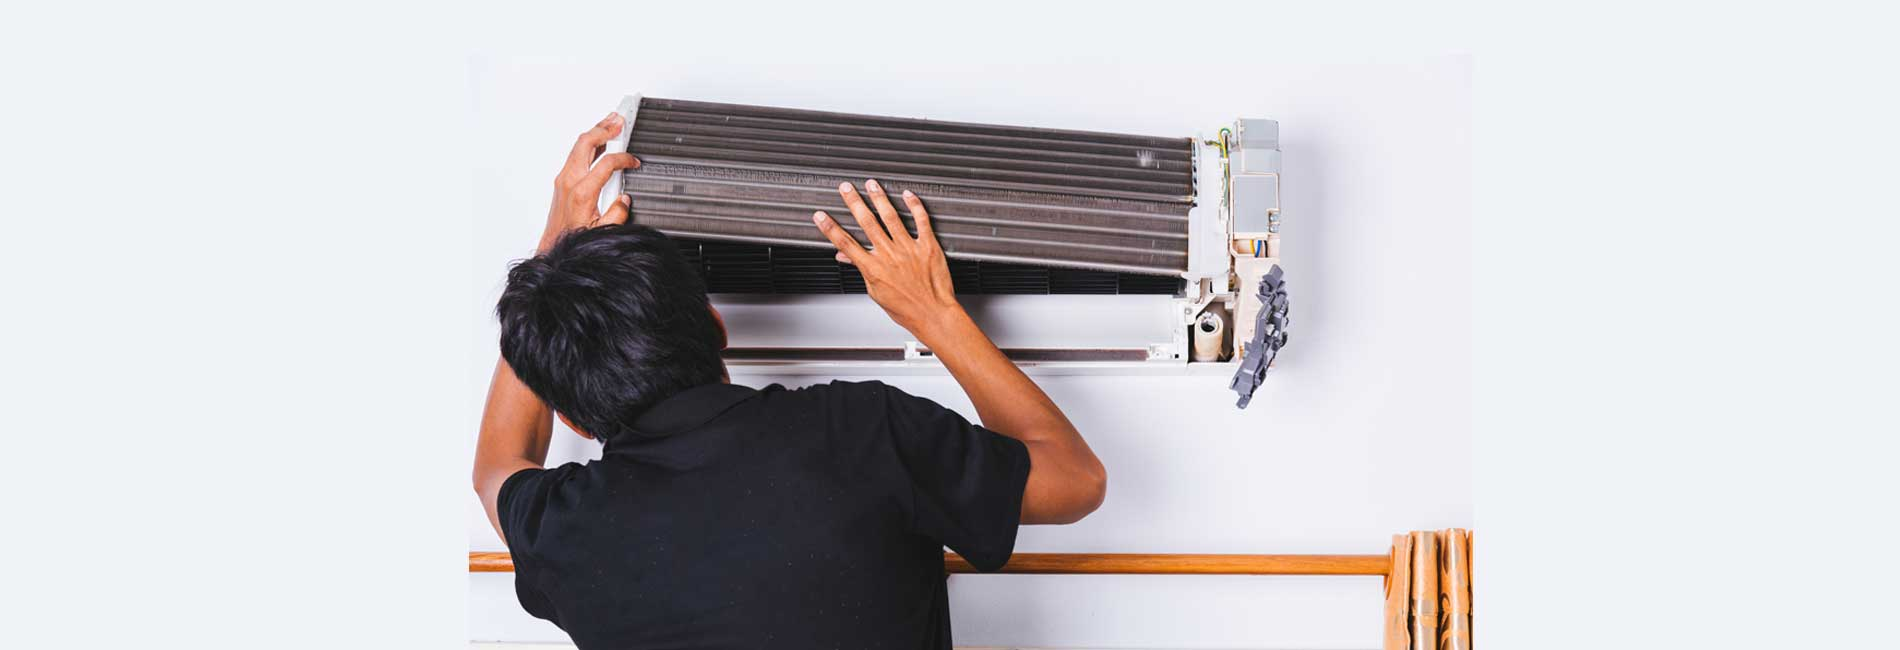 Panasonic AC Service in Mogappair East